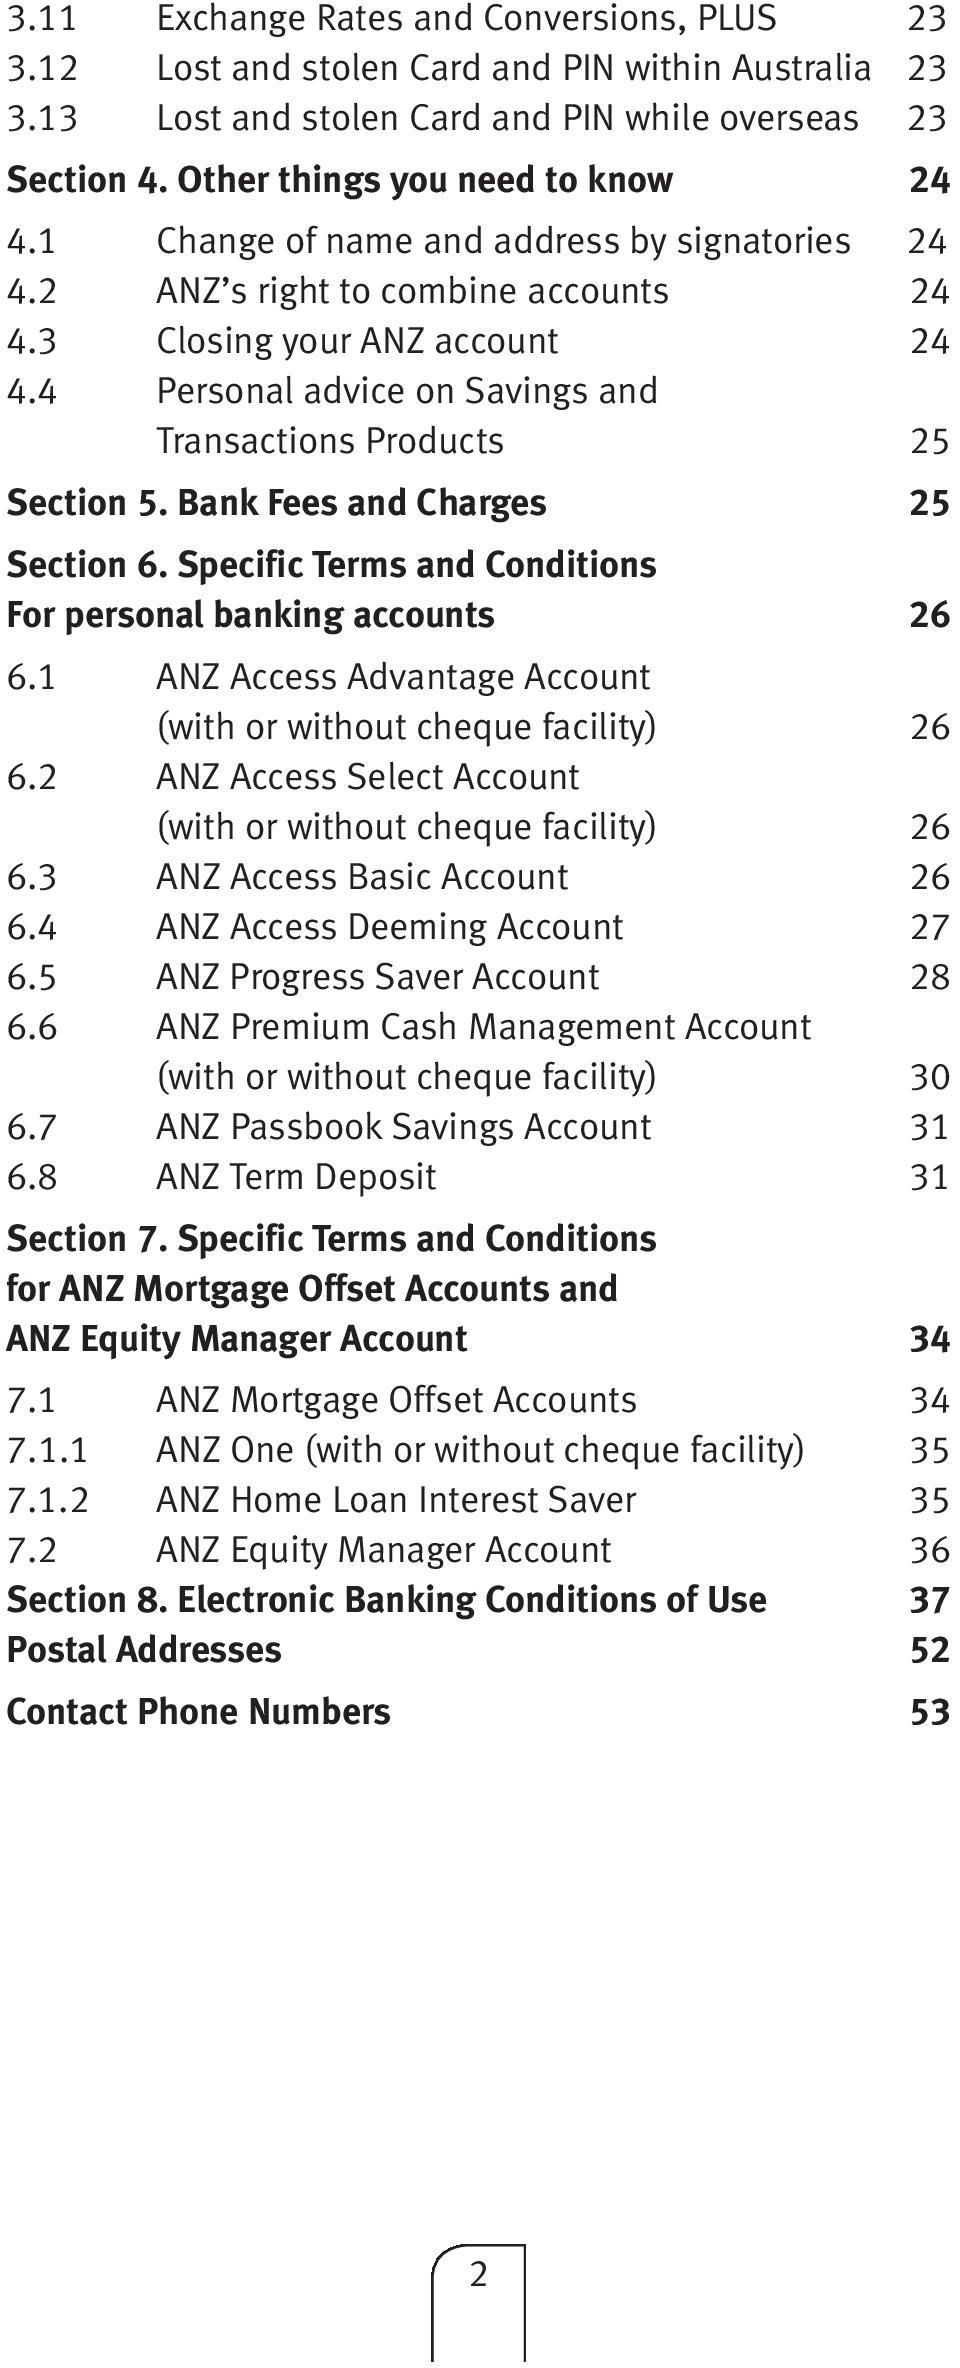 Bank Fees and Charges 25 Section 6. Specific Terms and Conditions For personal banking accounts 26 6.1 ANZ Access Advantage Account (with or without cheque facility) 26 6.